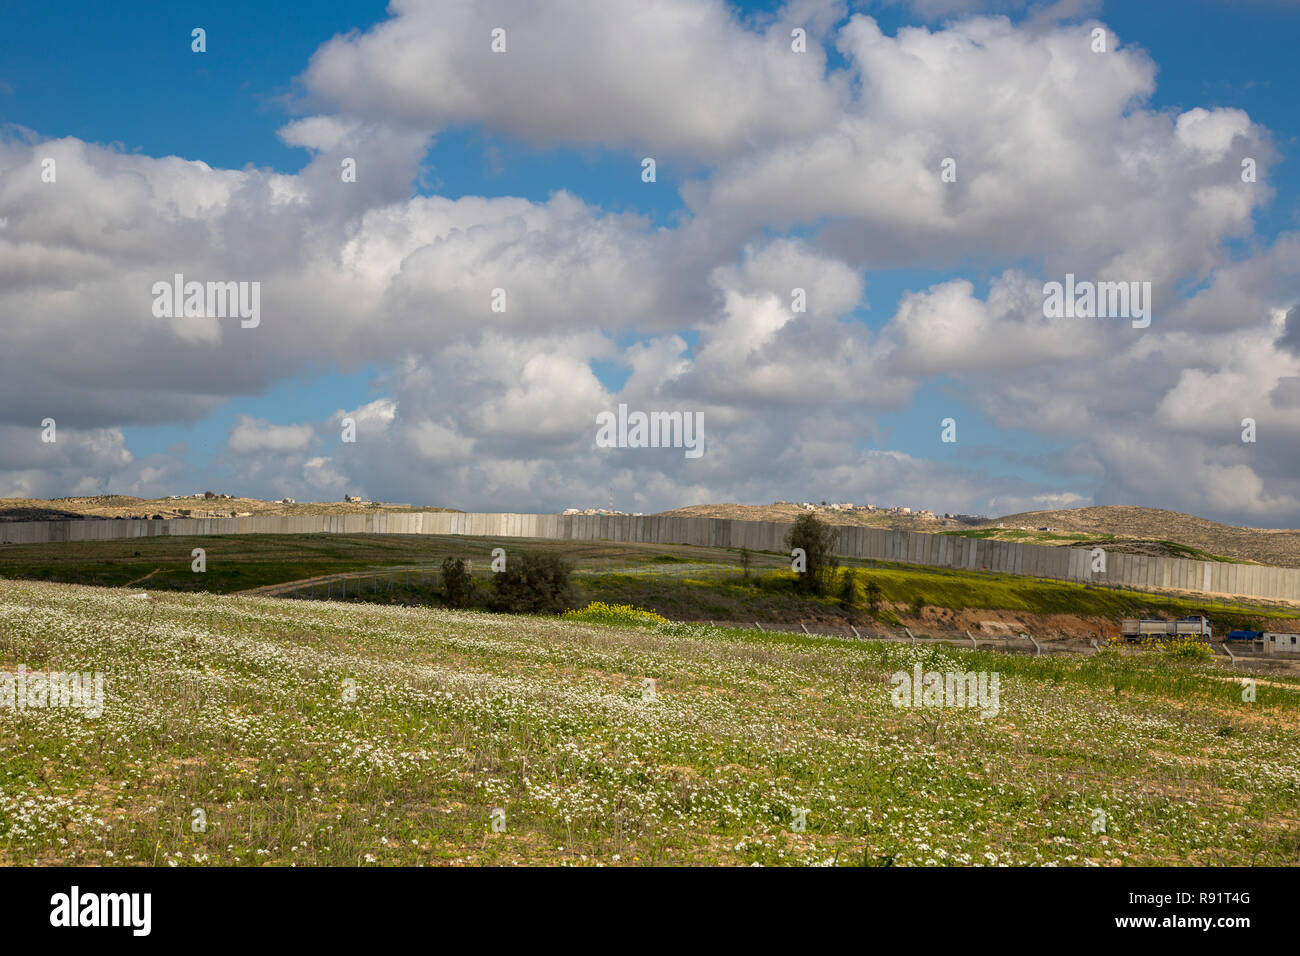 Concrete Separation wall between Israel and Palestine in the west bank - Stock Image